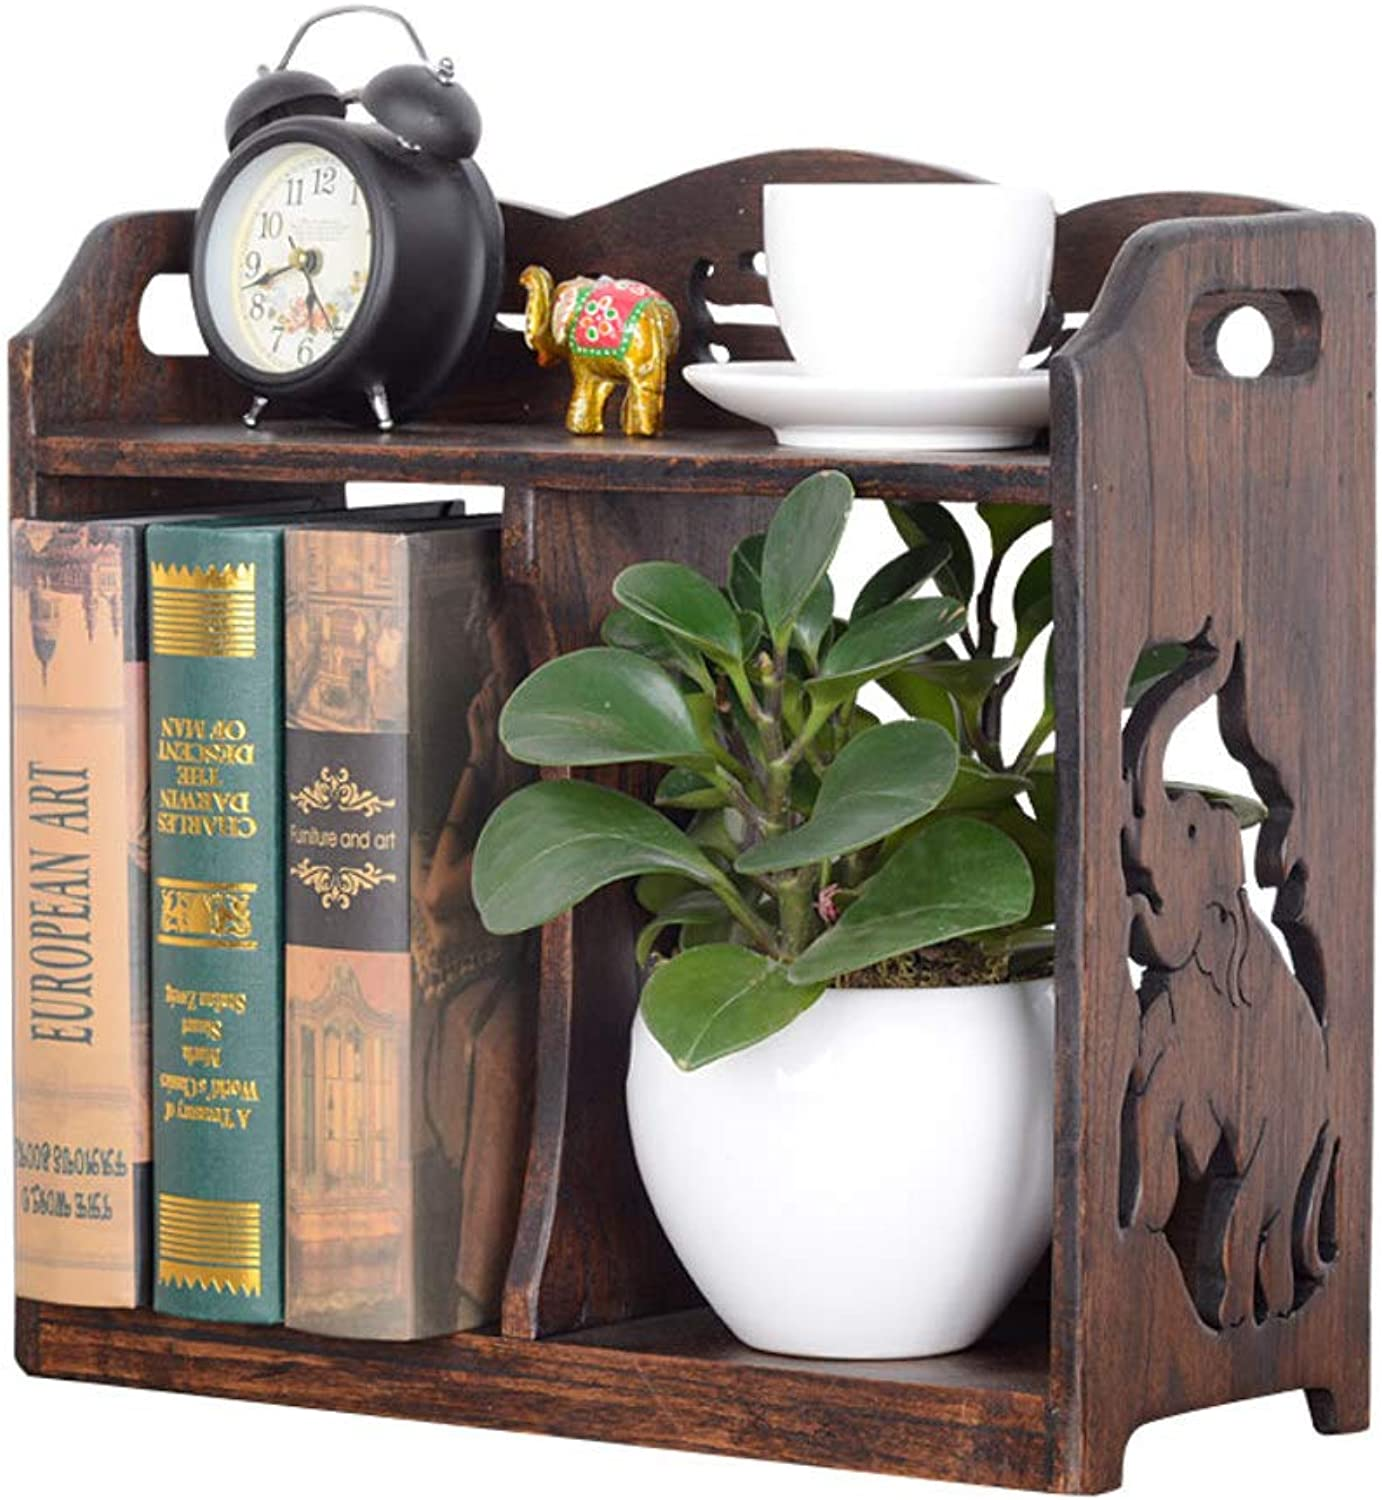 Retro Creative Solid Wood Table Bookshelf, Industrial Style Simple Bookcases Wood Shelves Office Storage Rack-A